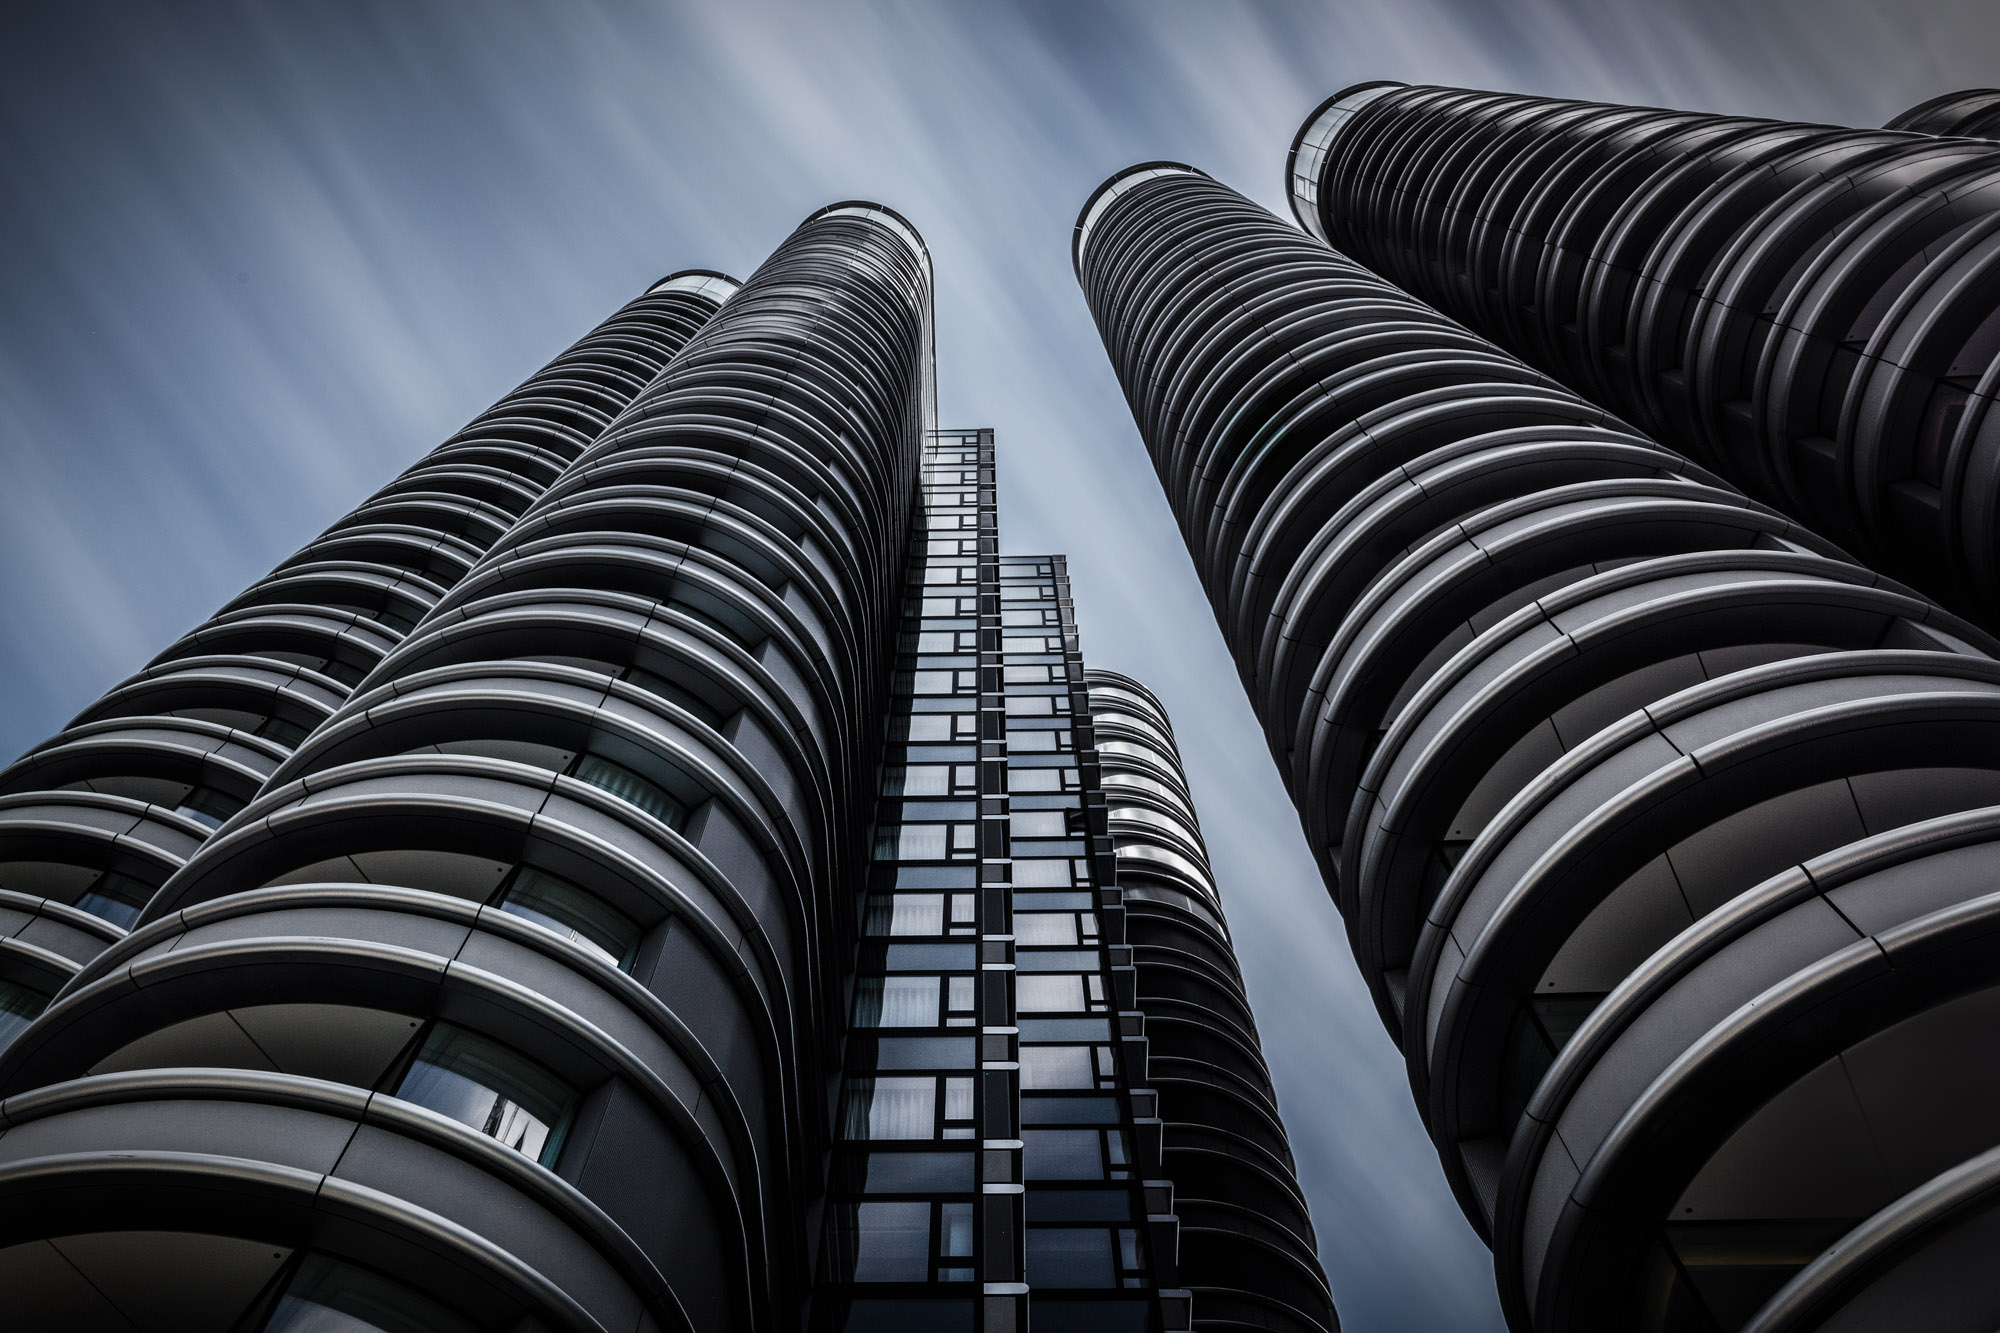 long exposure architecture photograph of modern hotel towers in London UK